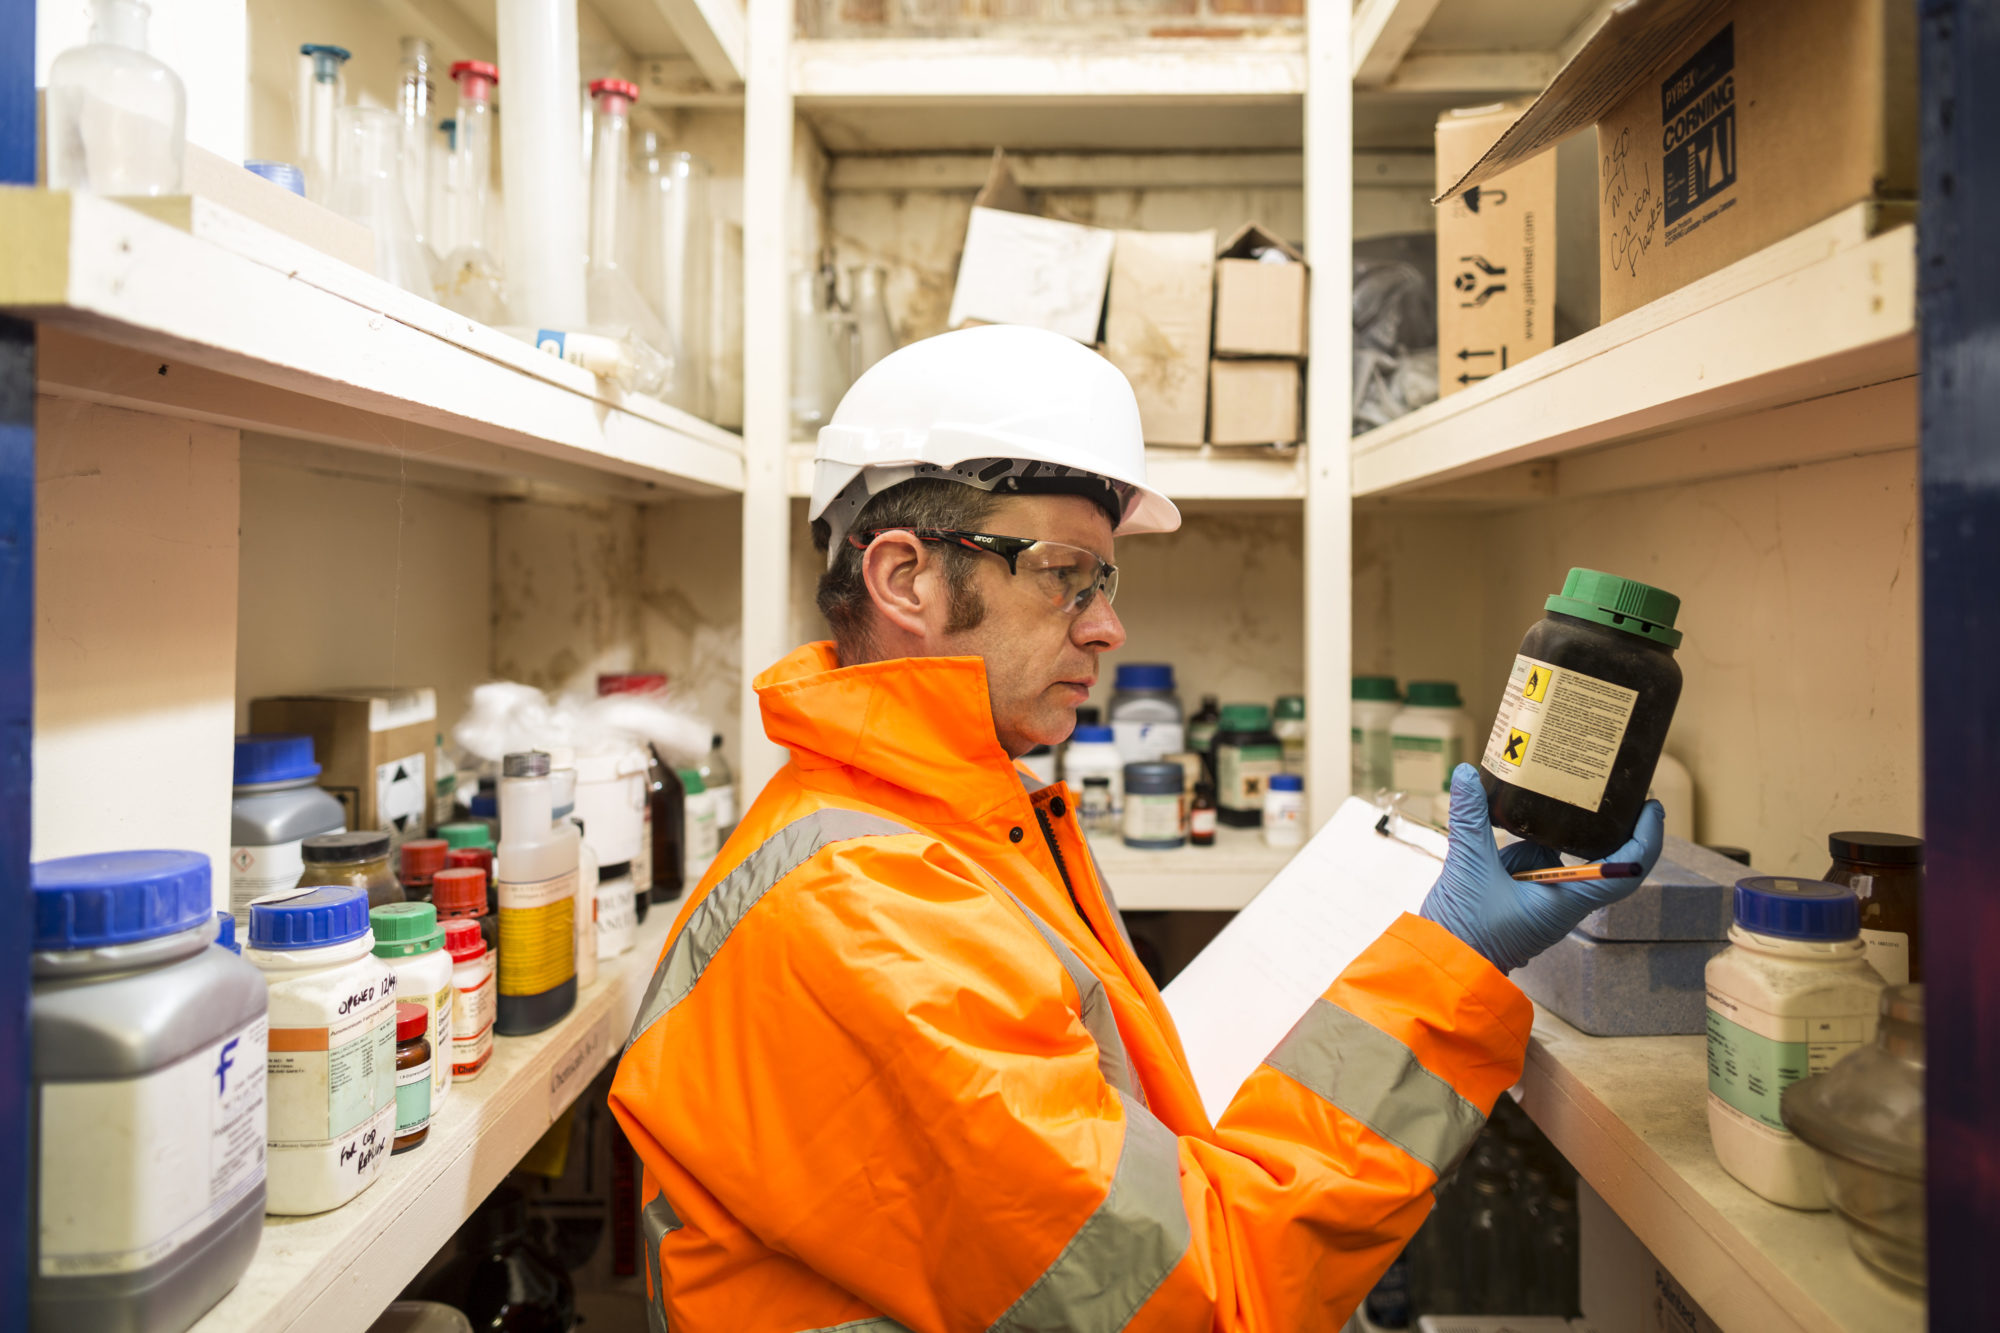 Laboratory waste removal